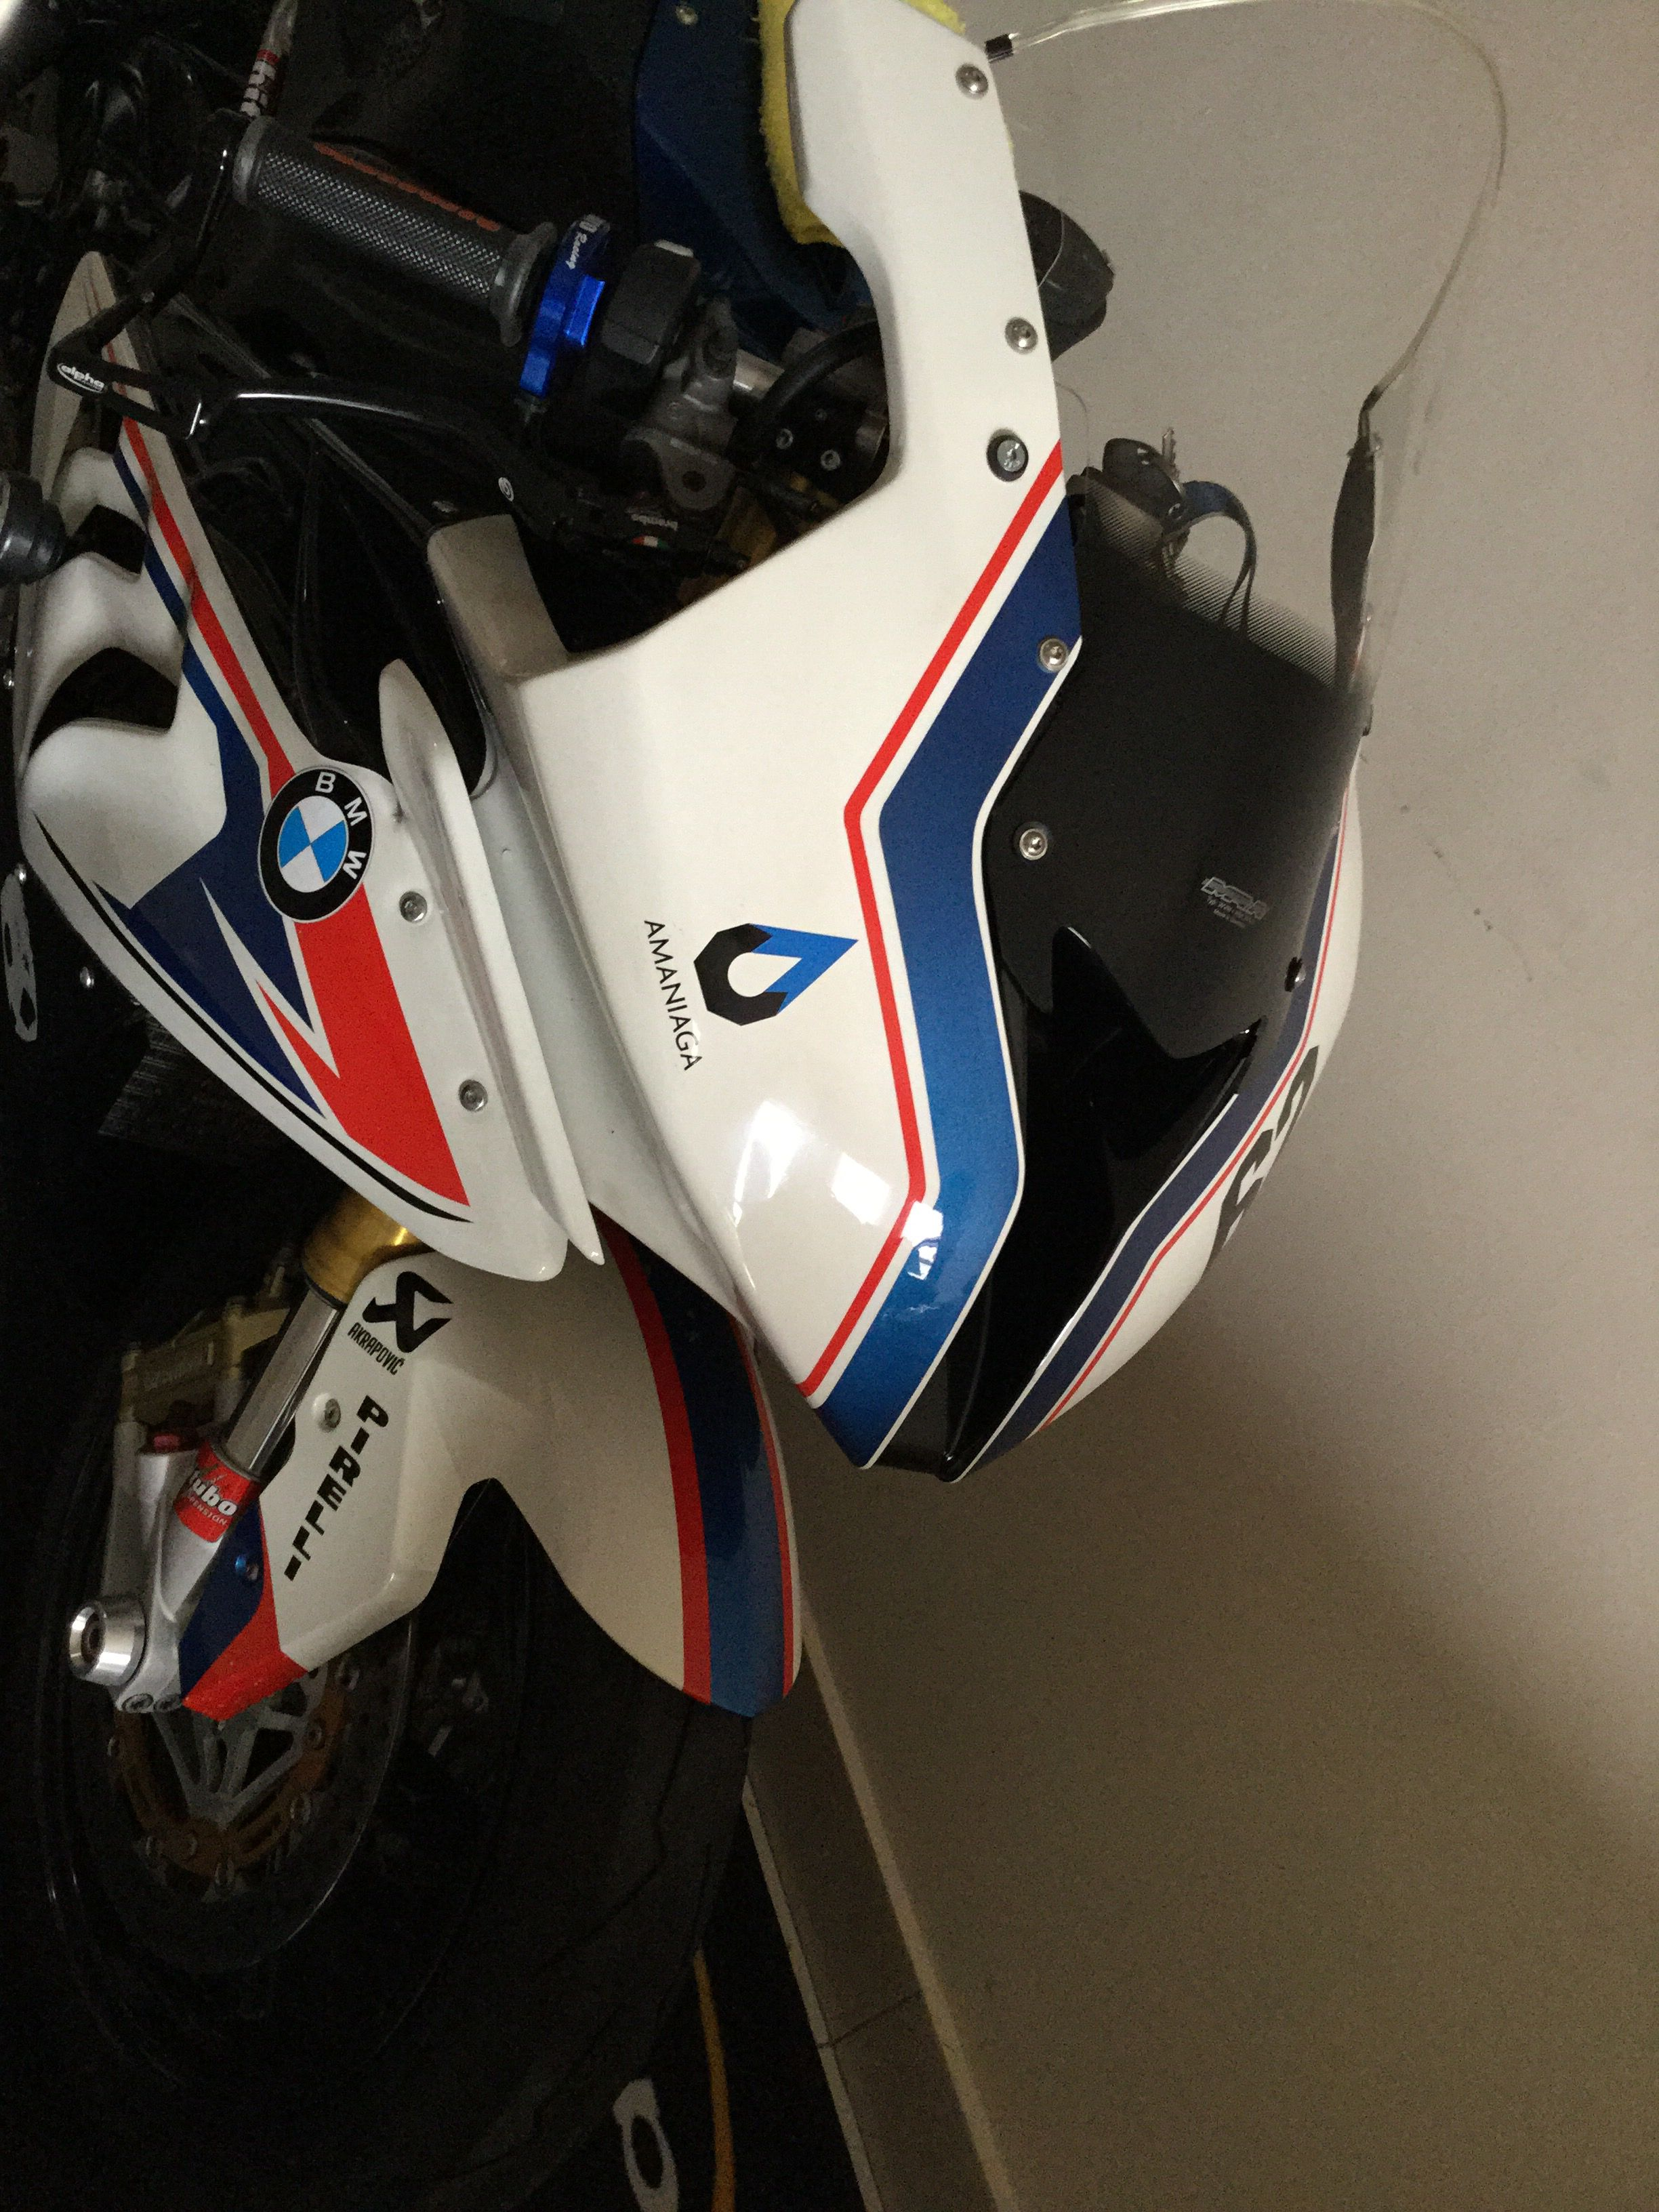 How Do I Paint My Motorcycle Fairings | Reviewmotors co